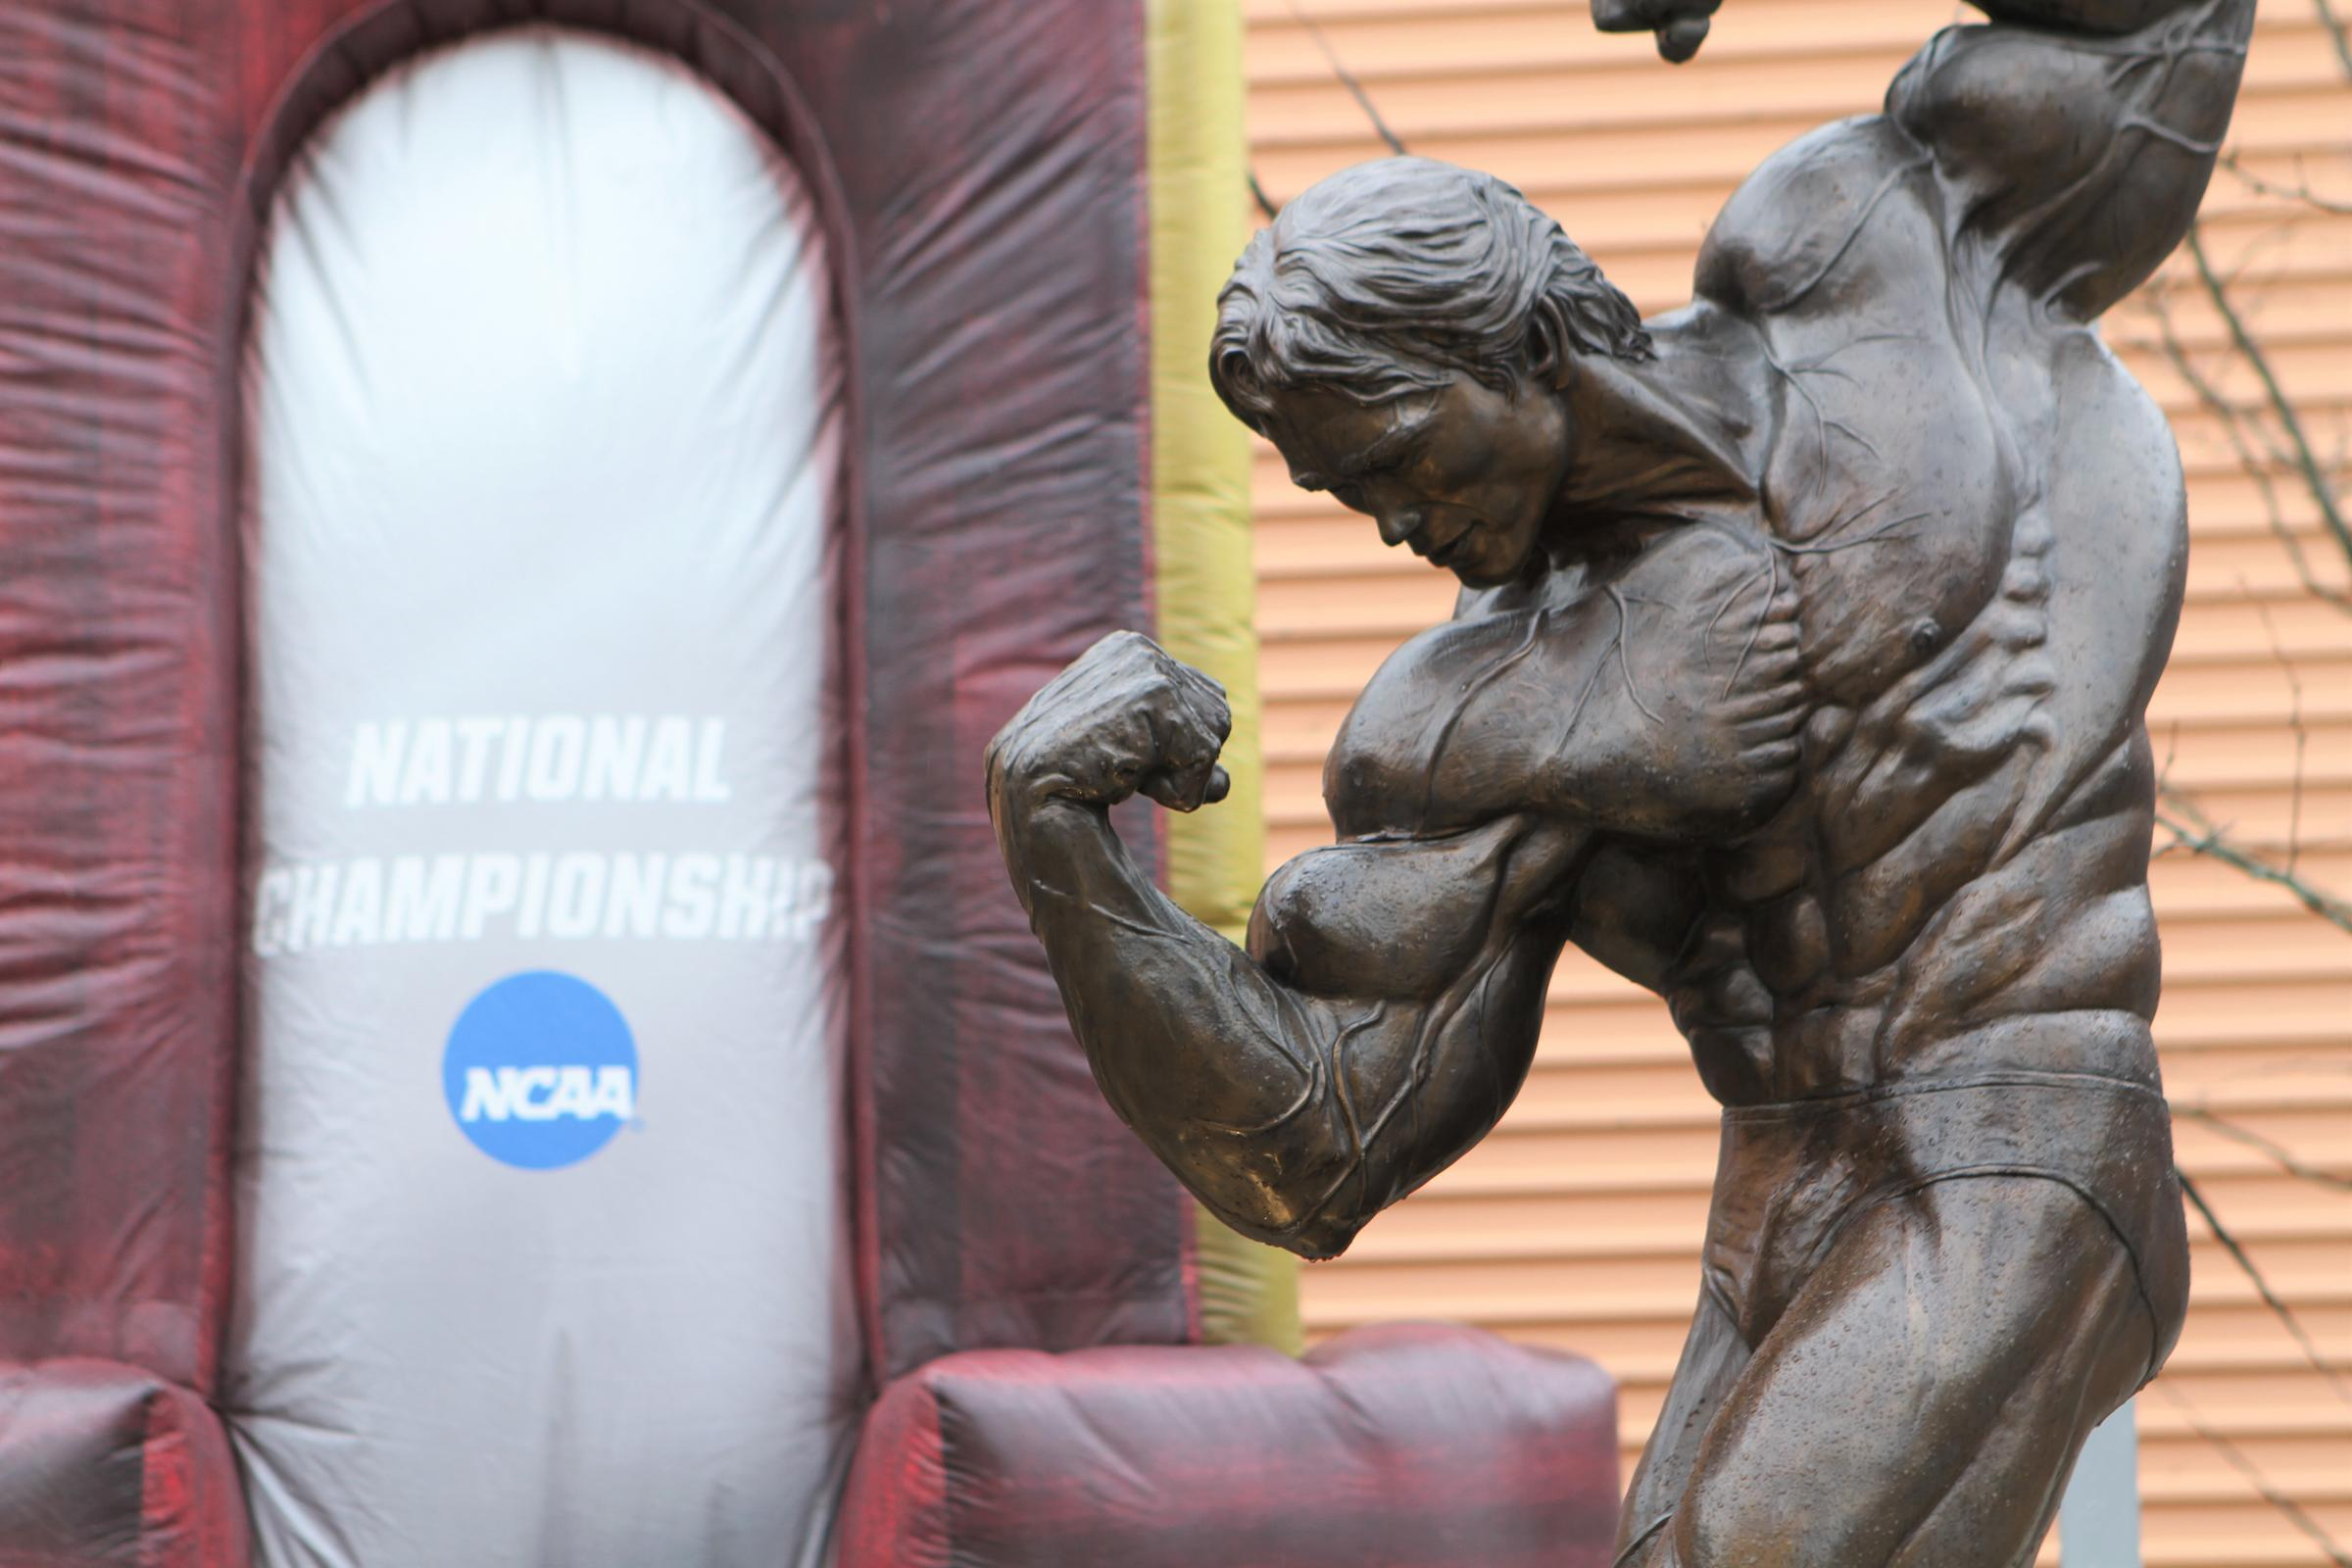 Downtown Columbus is playing host to the NCAA Women's Basketball Final Four this weekend